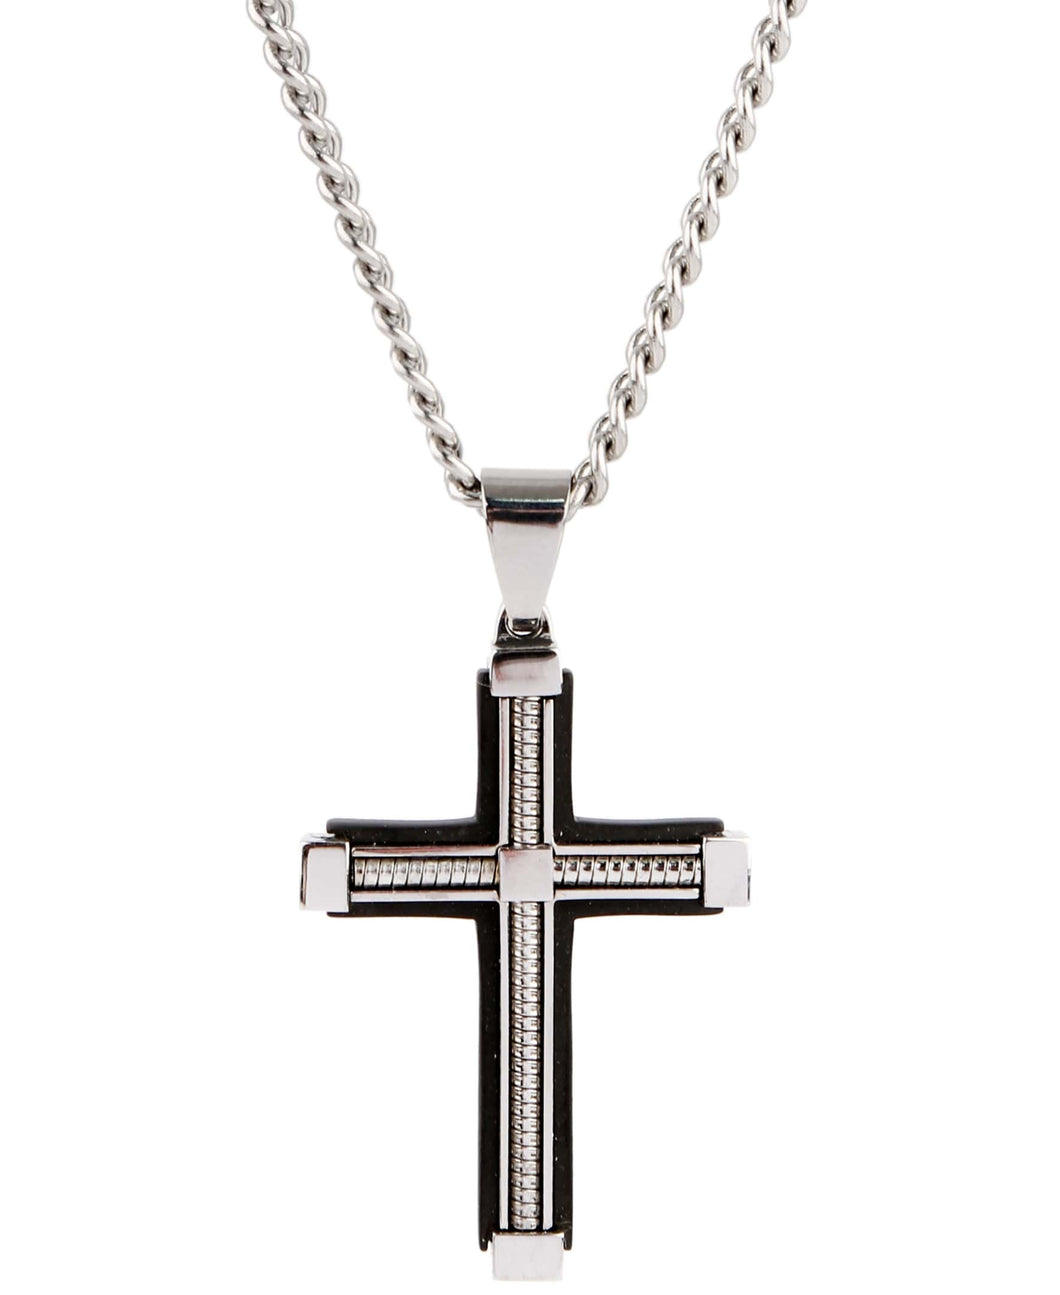 Sutton Stainless Steel Cable Cross Pendant Necklace